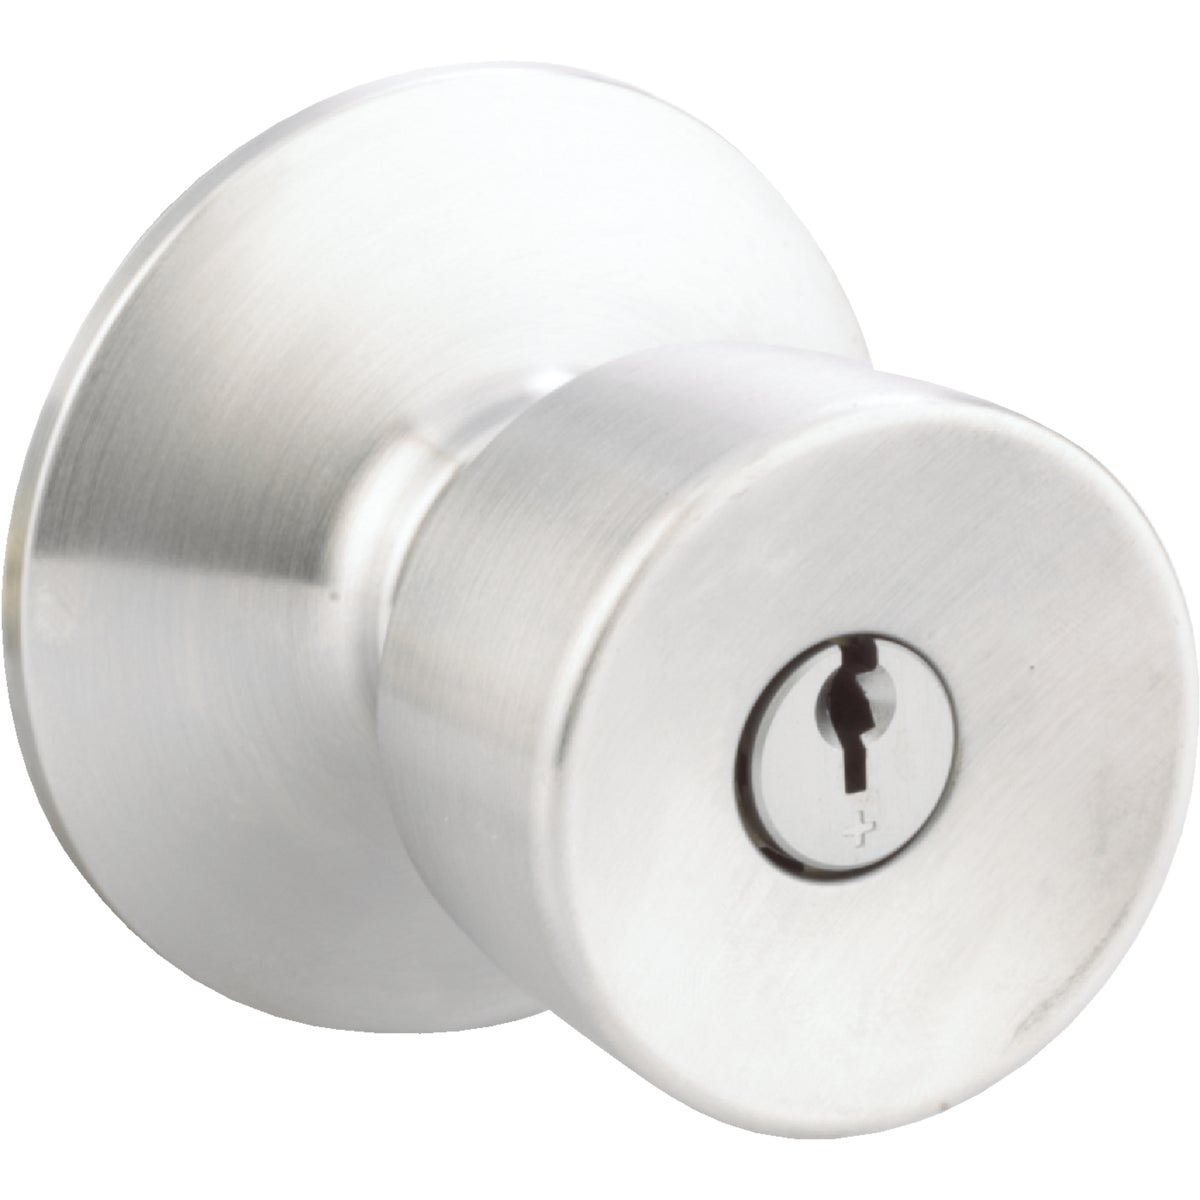 SC BELL ENTRY LOCK - F51VBEL626 by Schlage Lock Co